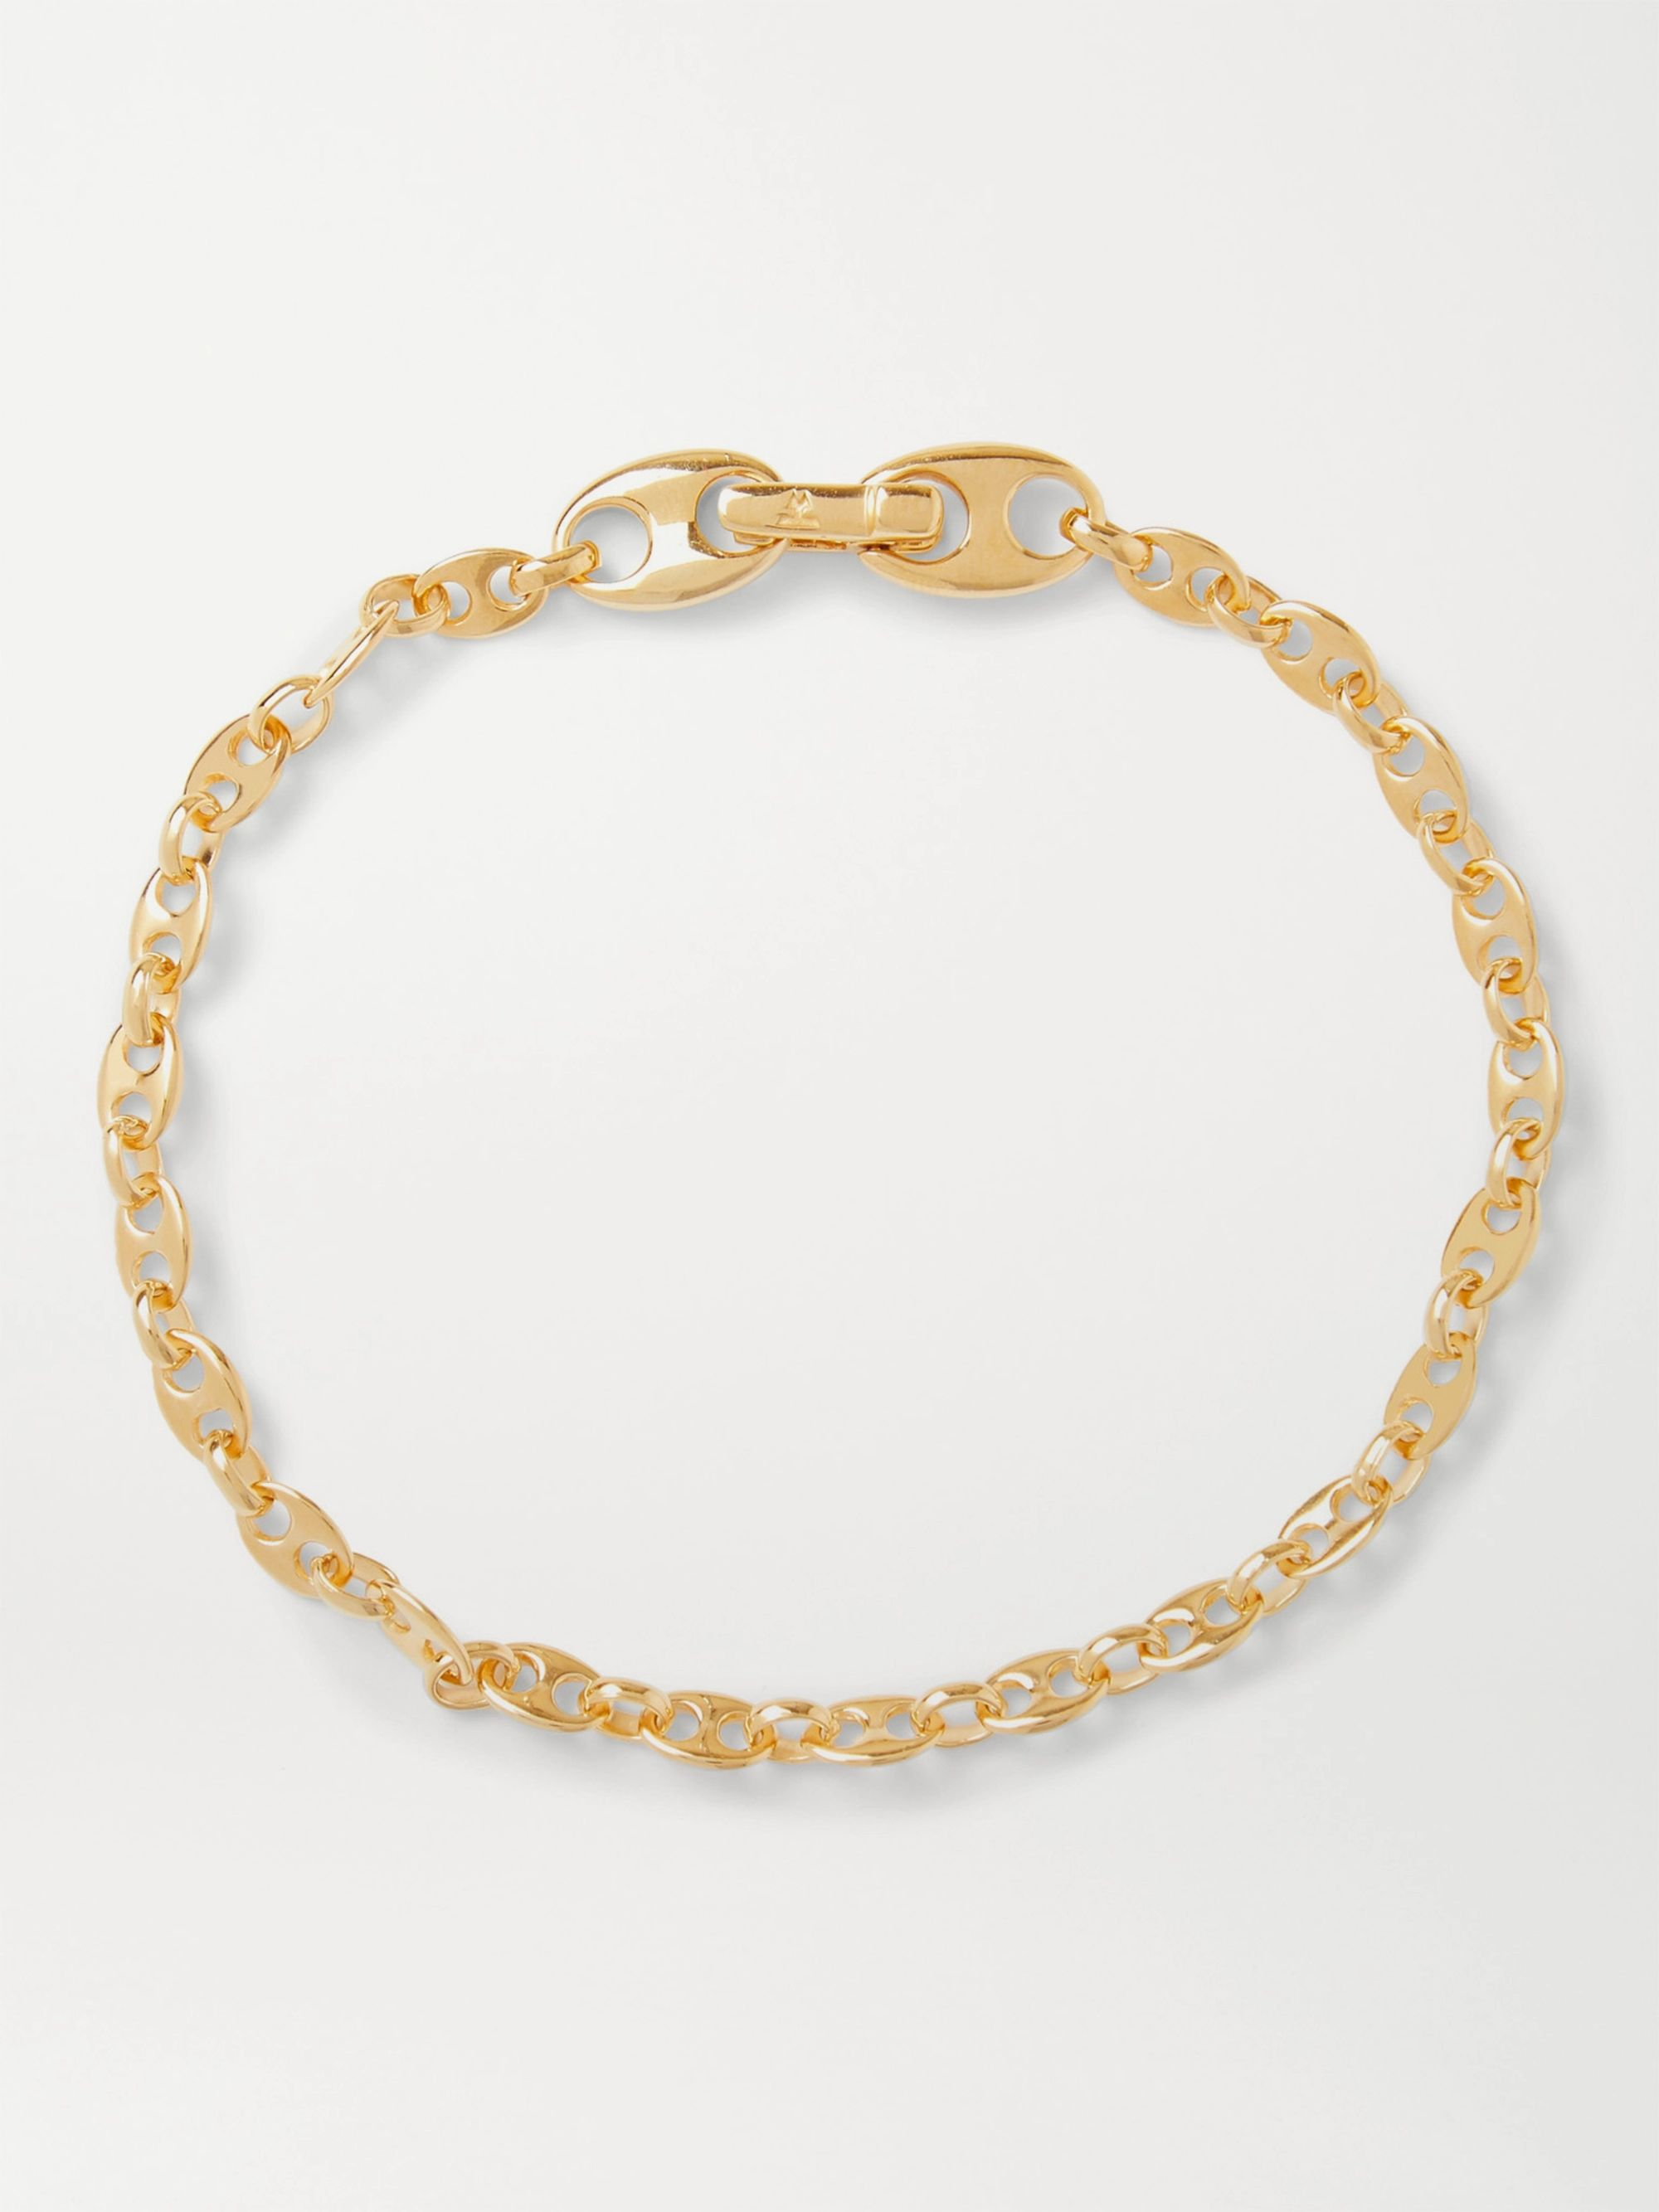 TOM WOOD Bean Gold-Plated Sterling Silver Chain Bracelet